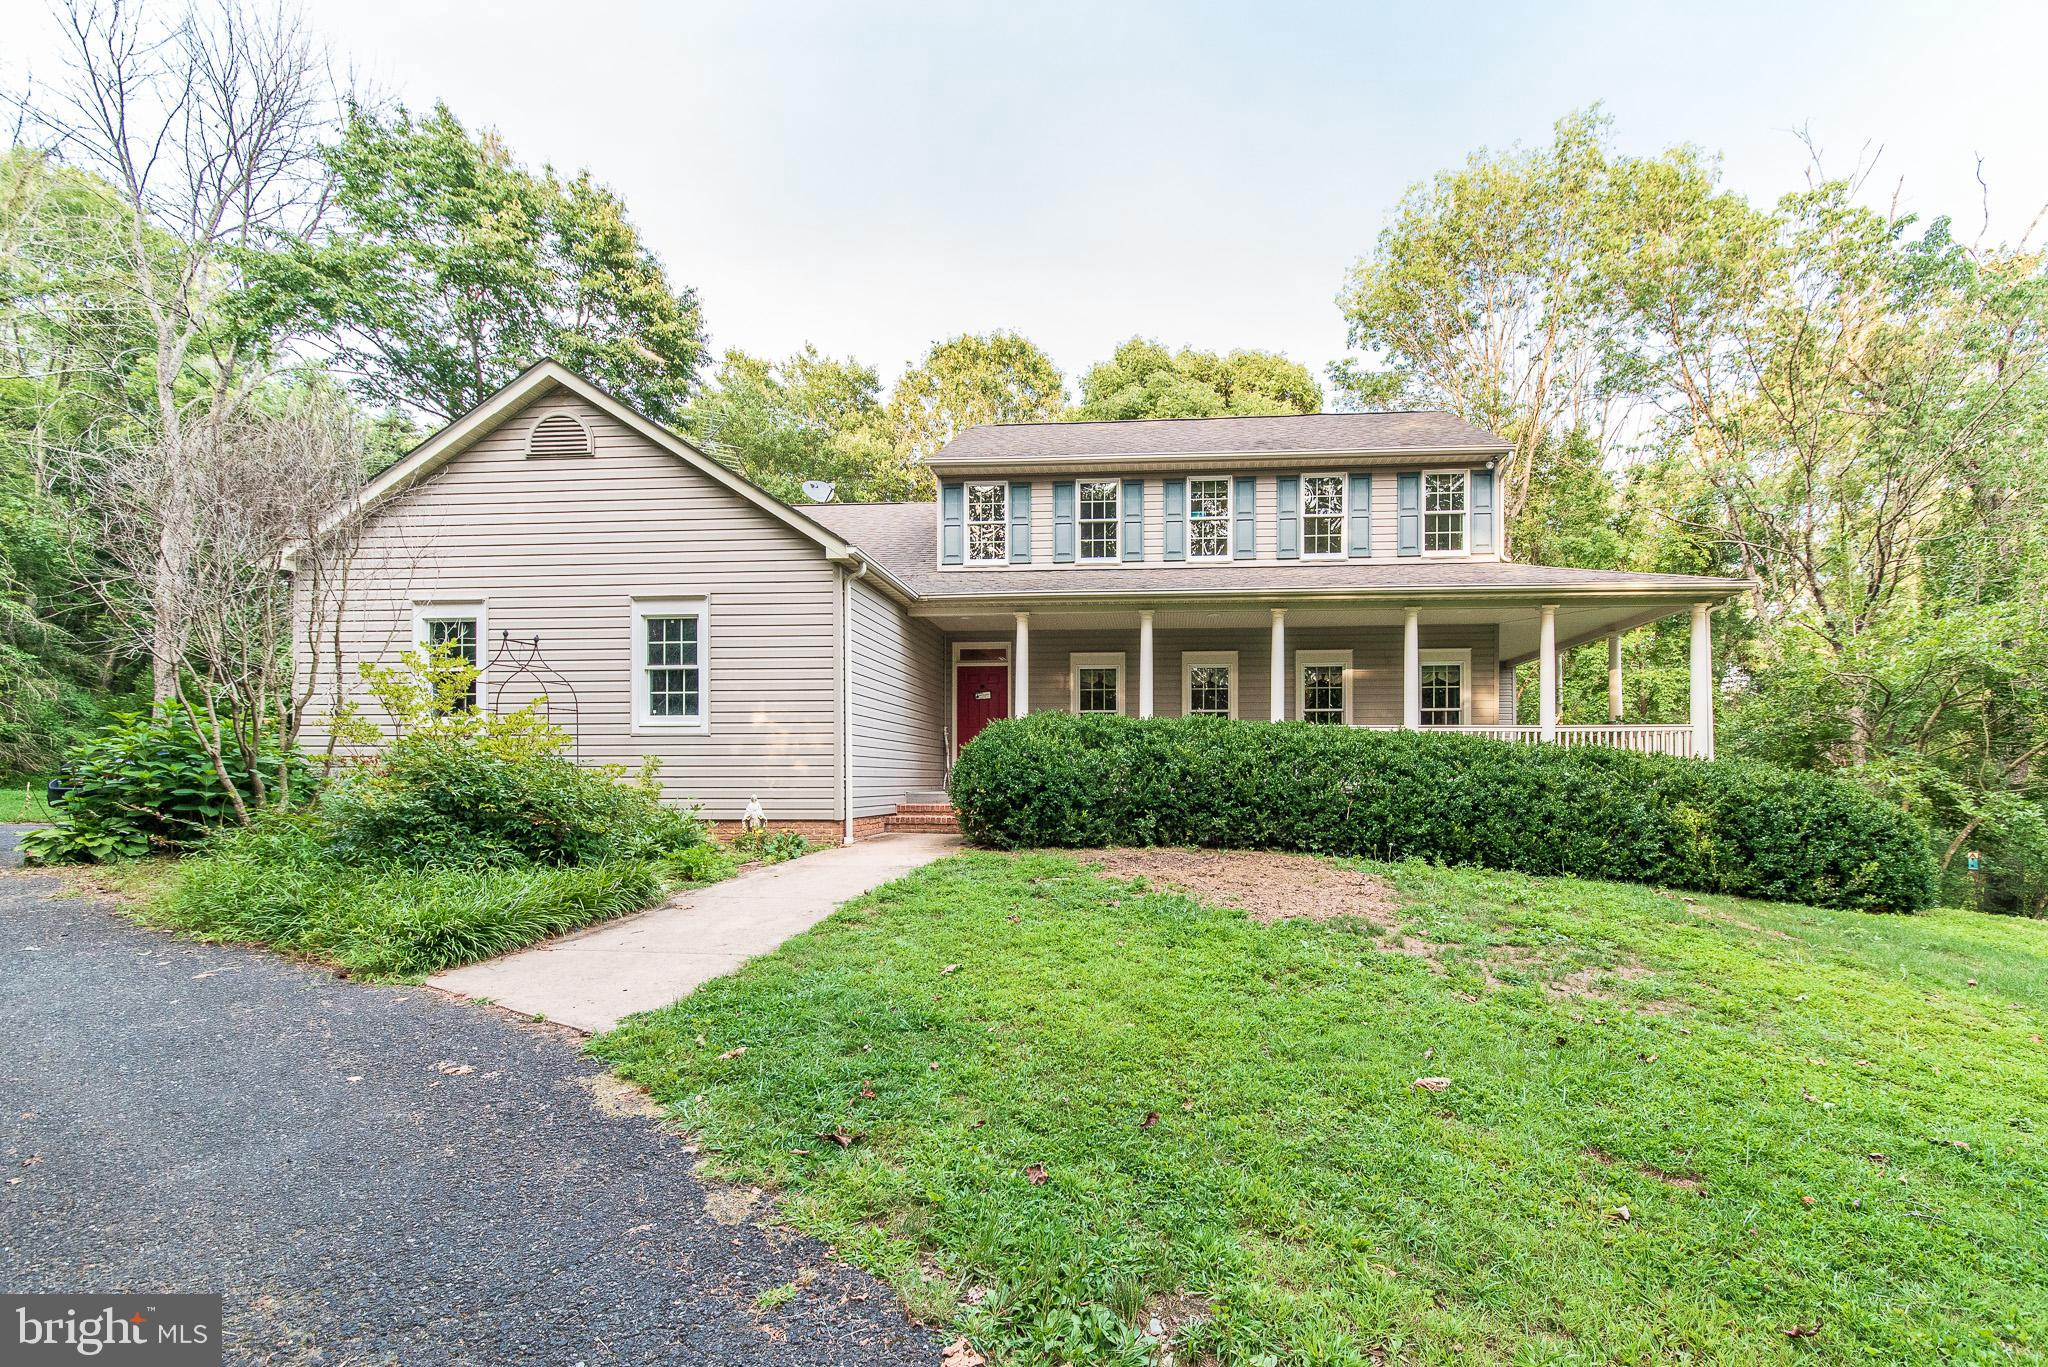 5017 NORRISVILLE ROAD, WHITE HALL, MD 21161